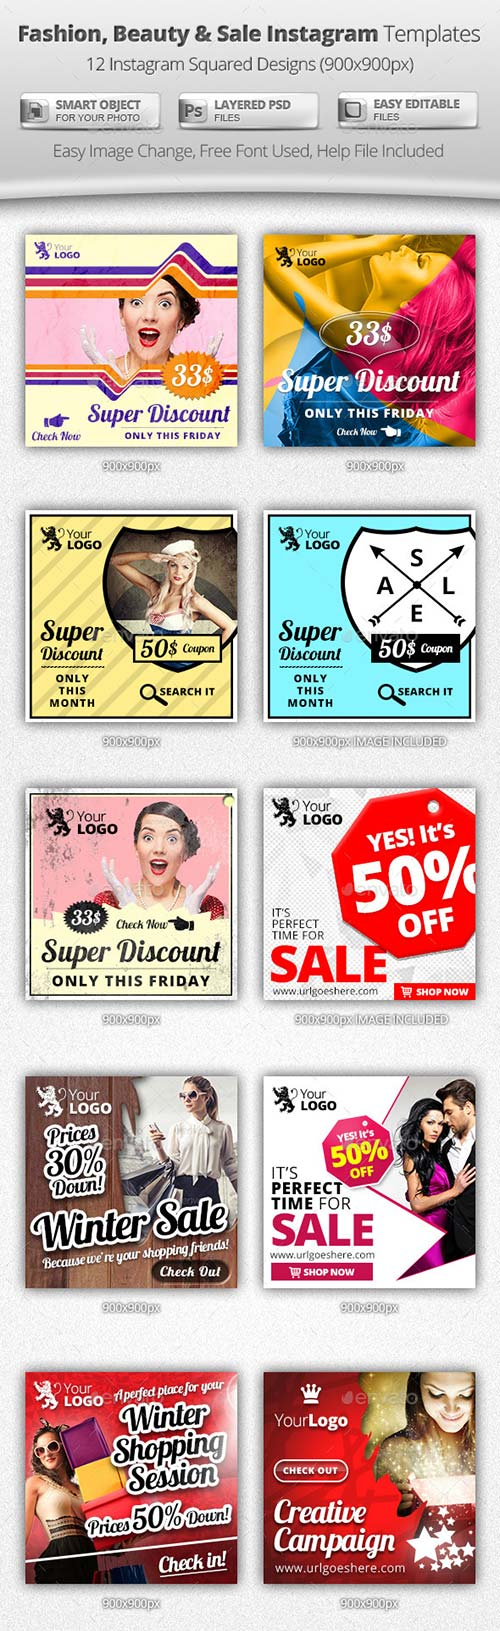 GraphicRiver Fashion, Beauty & Sale Instagram Templates